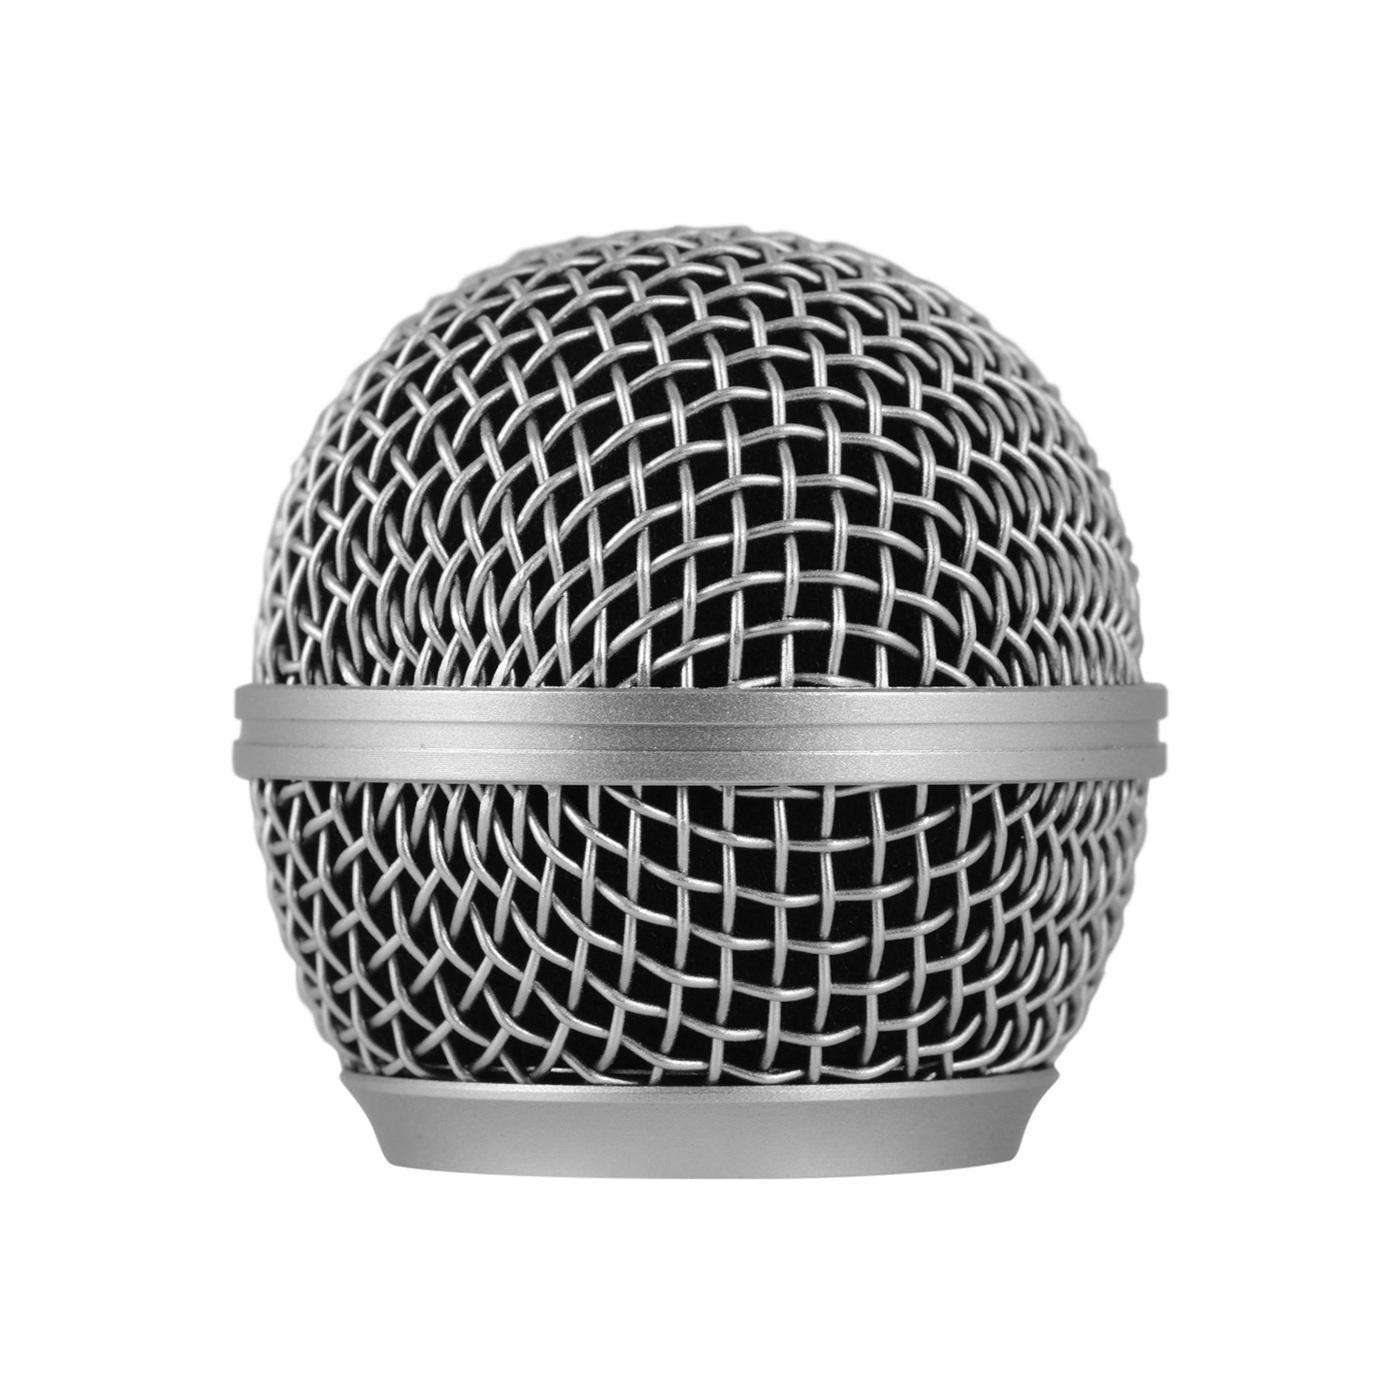 Microphone Grille Mic Replacement Ball Head Compatible with Shure SM58/SM58S/SM58LC/BETA58/BETA58A/SA-M30/SV100/UT2/PGX24/SLX4 Microphones